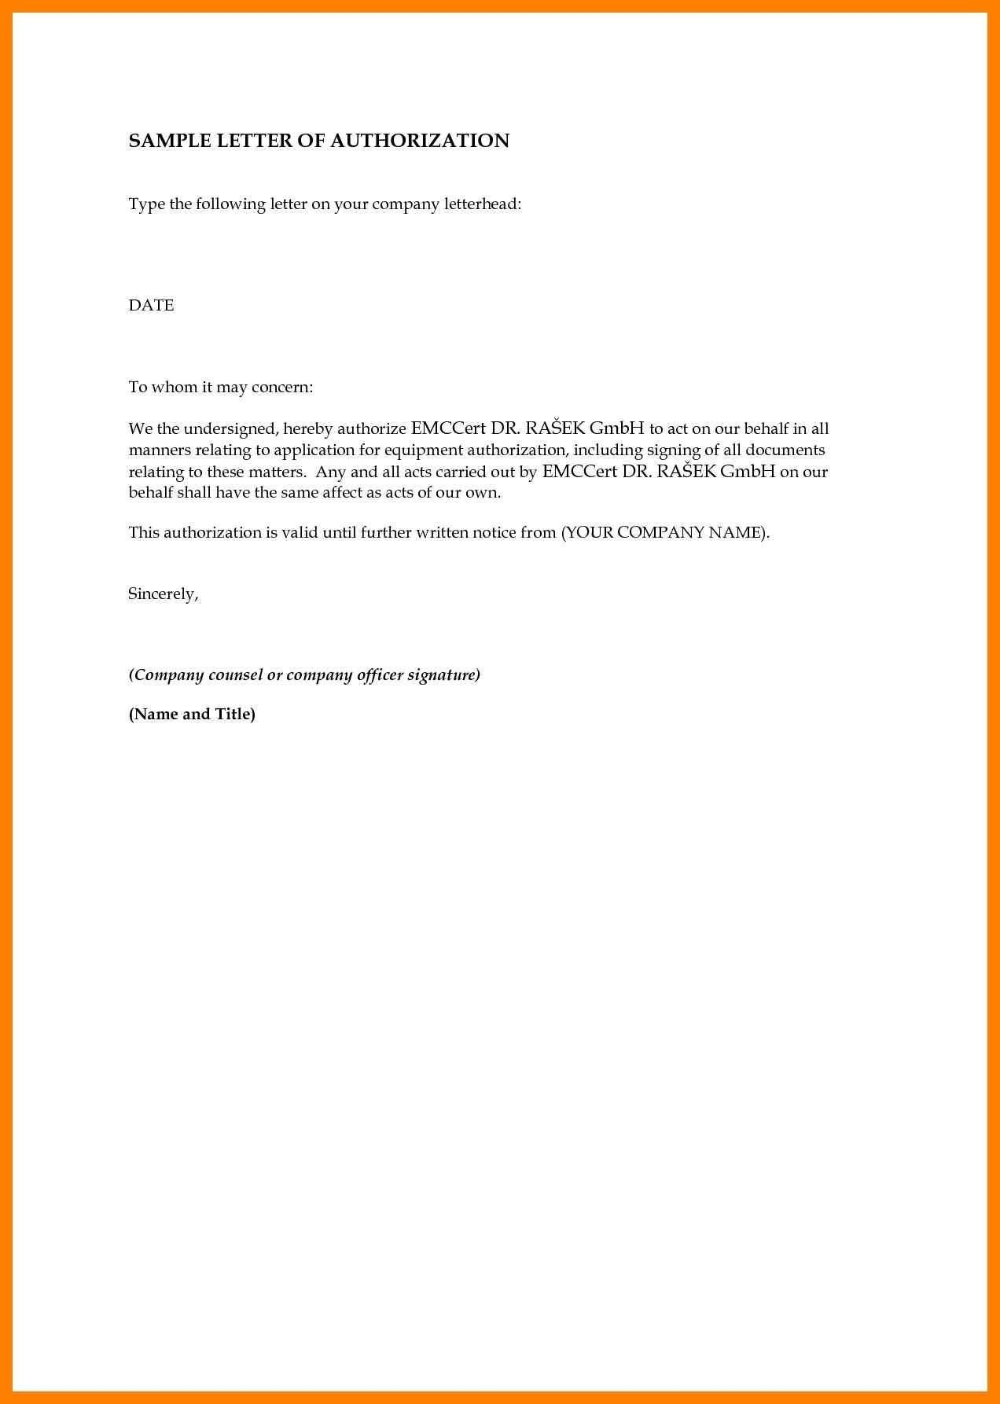 Sample Authorization Letter Birth Certificate Nso Fresh